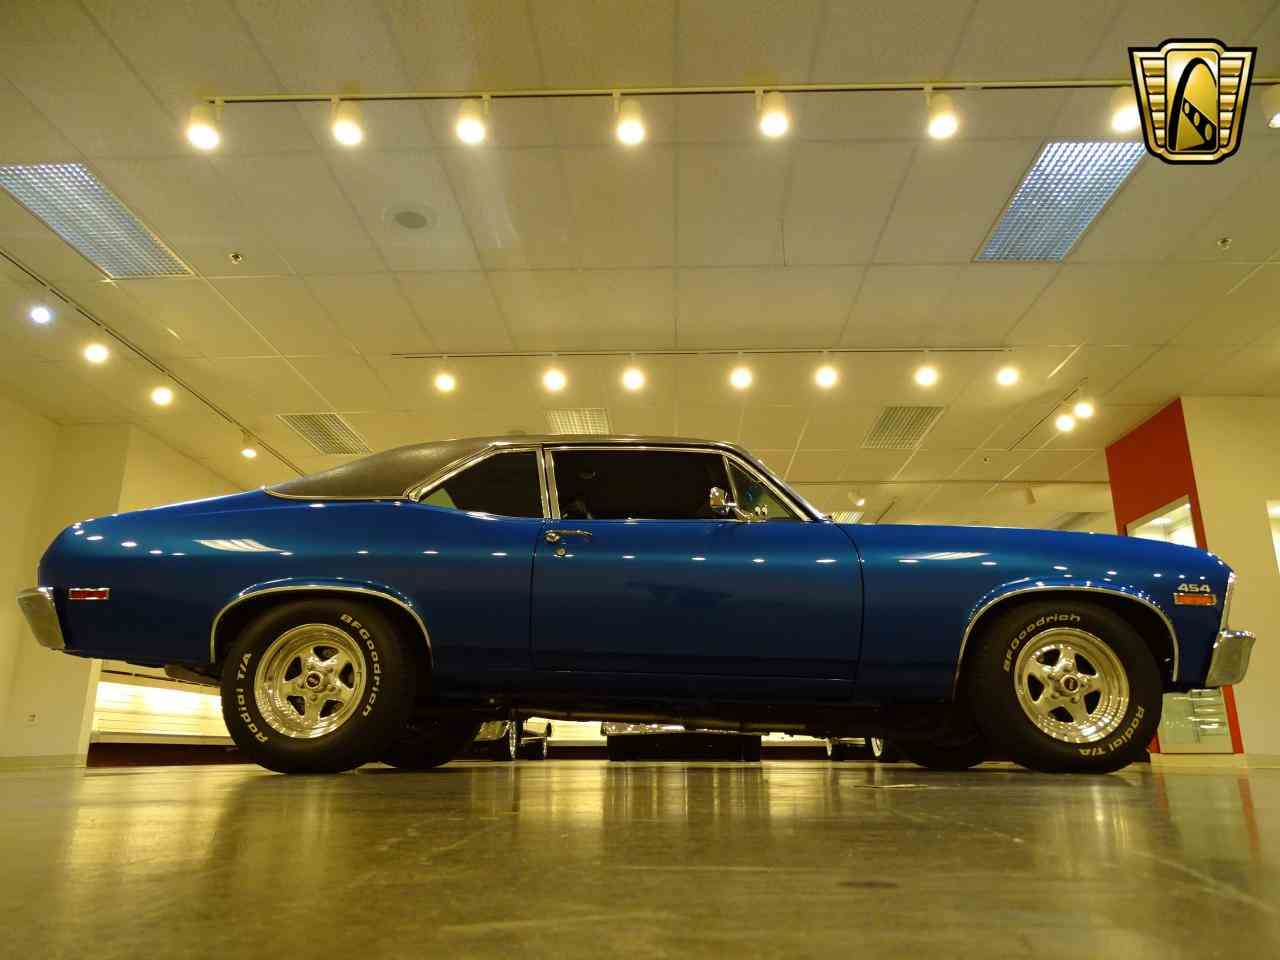 Large Picture of 1971 Nova located in Illinois - $40,595.00 Offered by Gateway Classic Cars - St. Louis - KE13